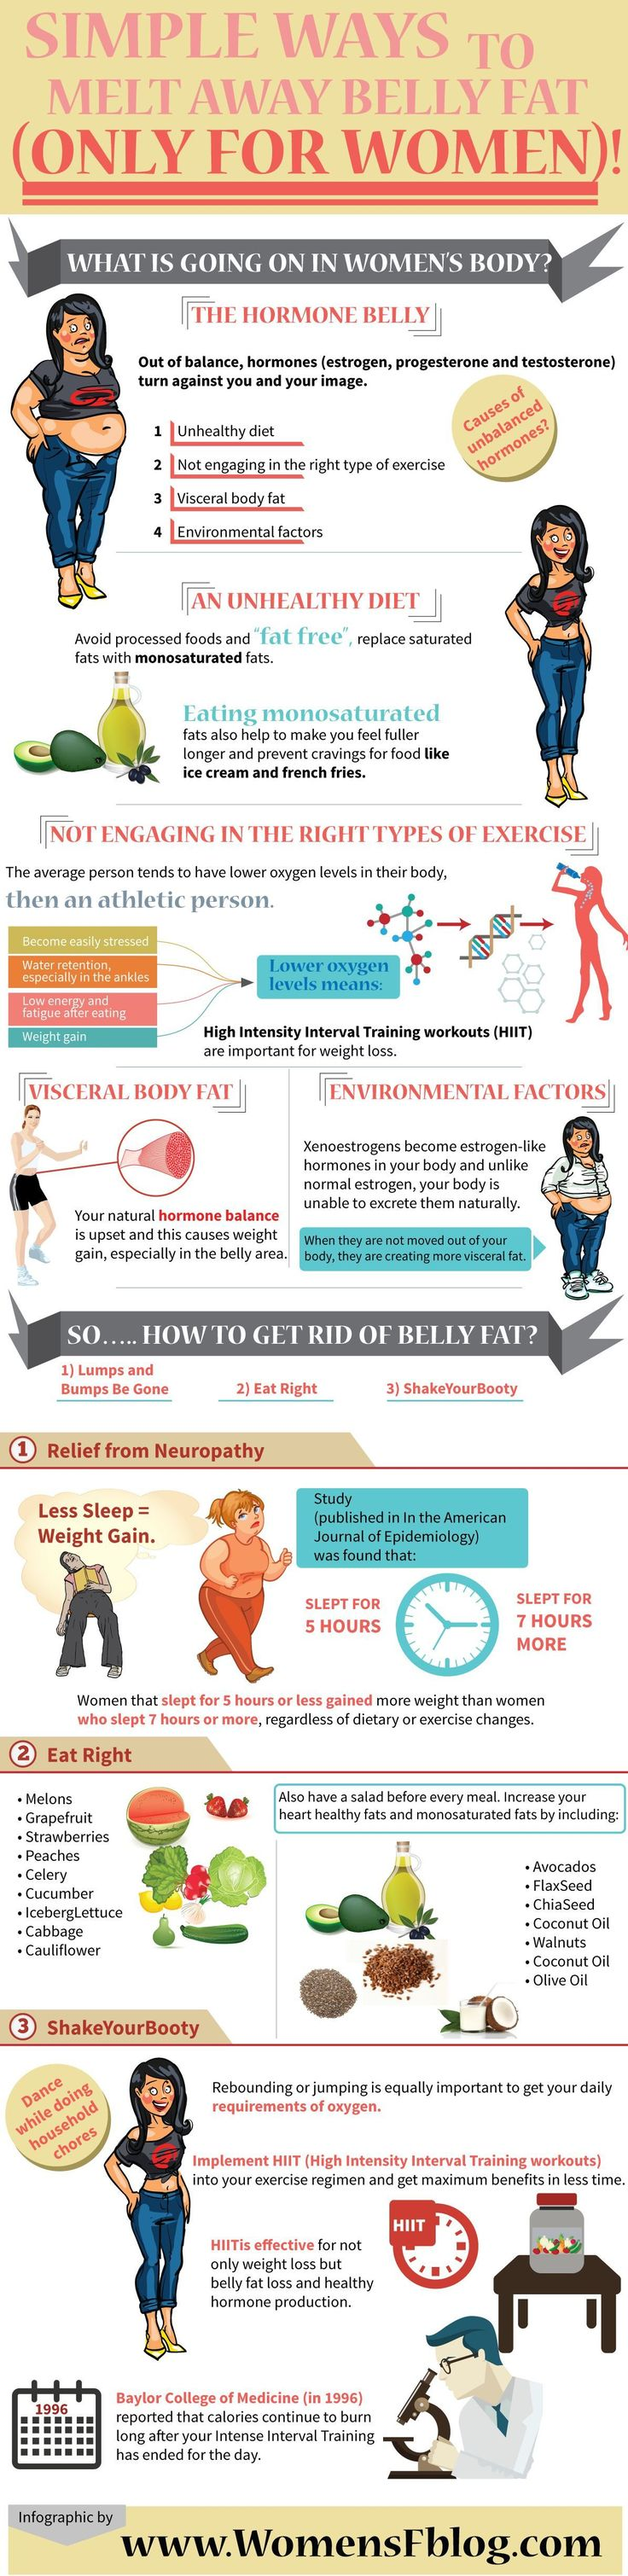 3 Ways that Helping Women Quickly Melt Away Belly Fat and Build a Sexy Flat…